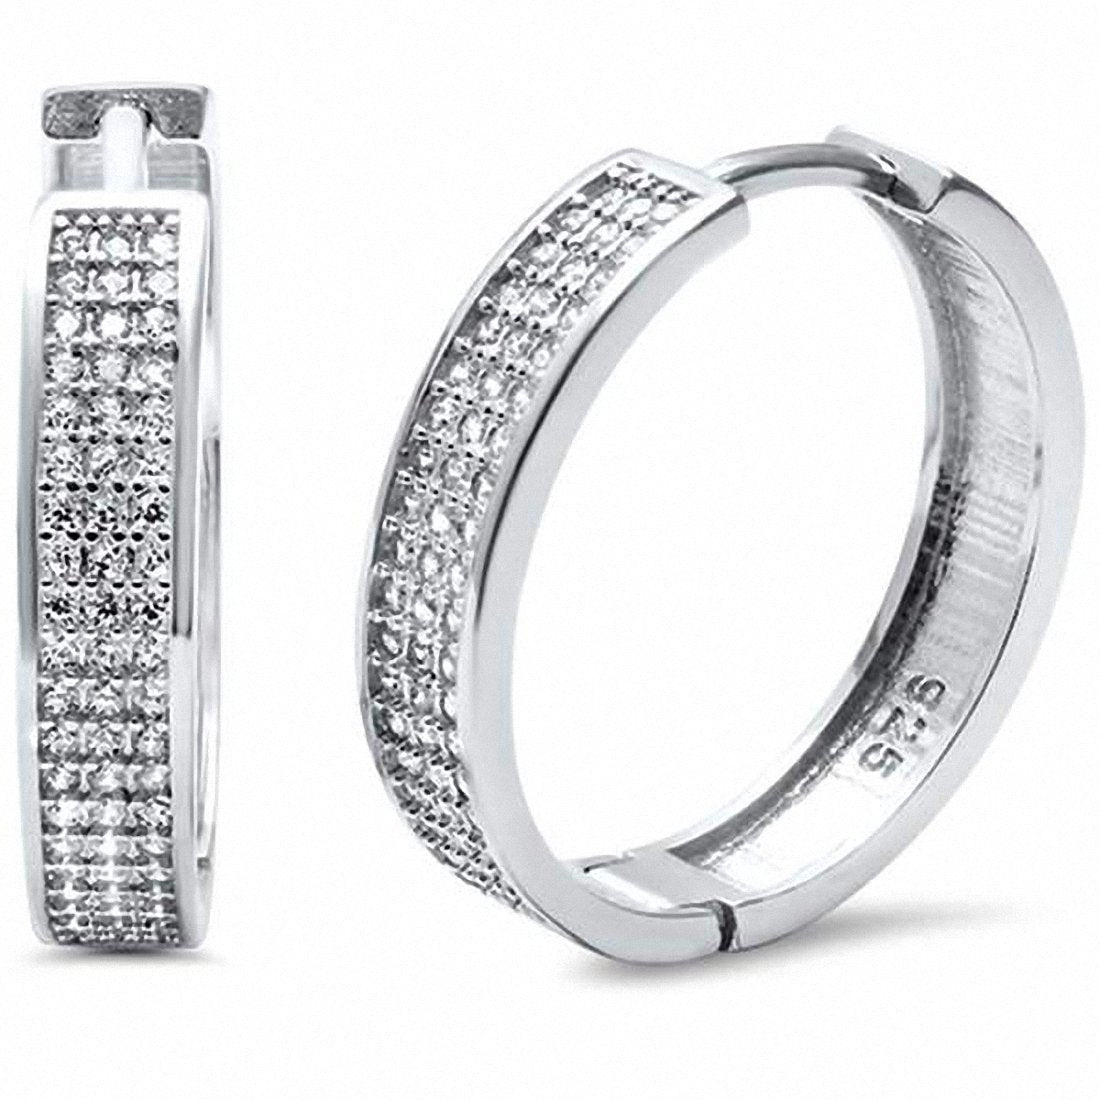 Micro Pave Hoop Earrings Round Cubic Zirconia 925 Sterling Silver Choose Color